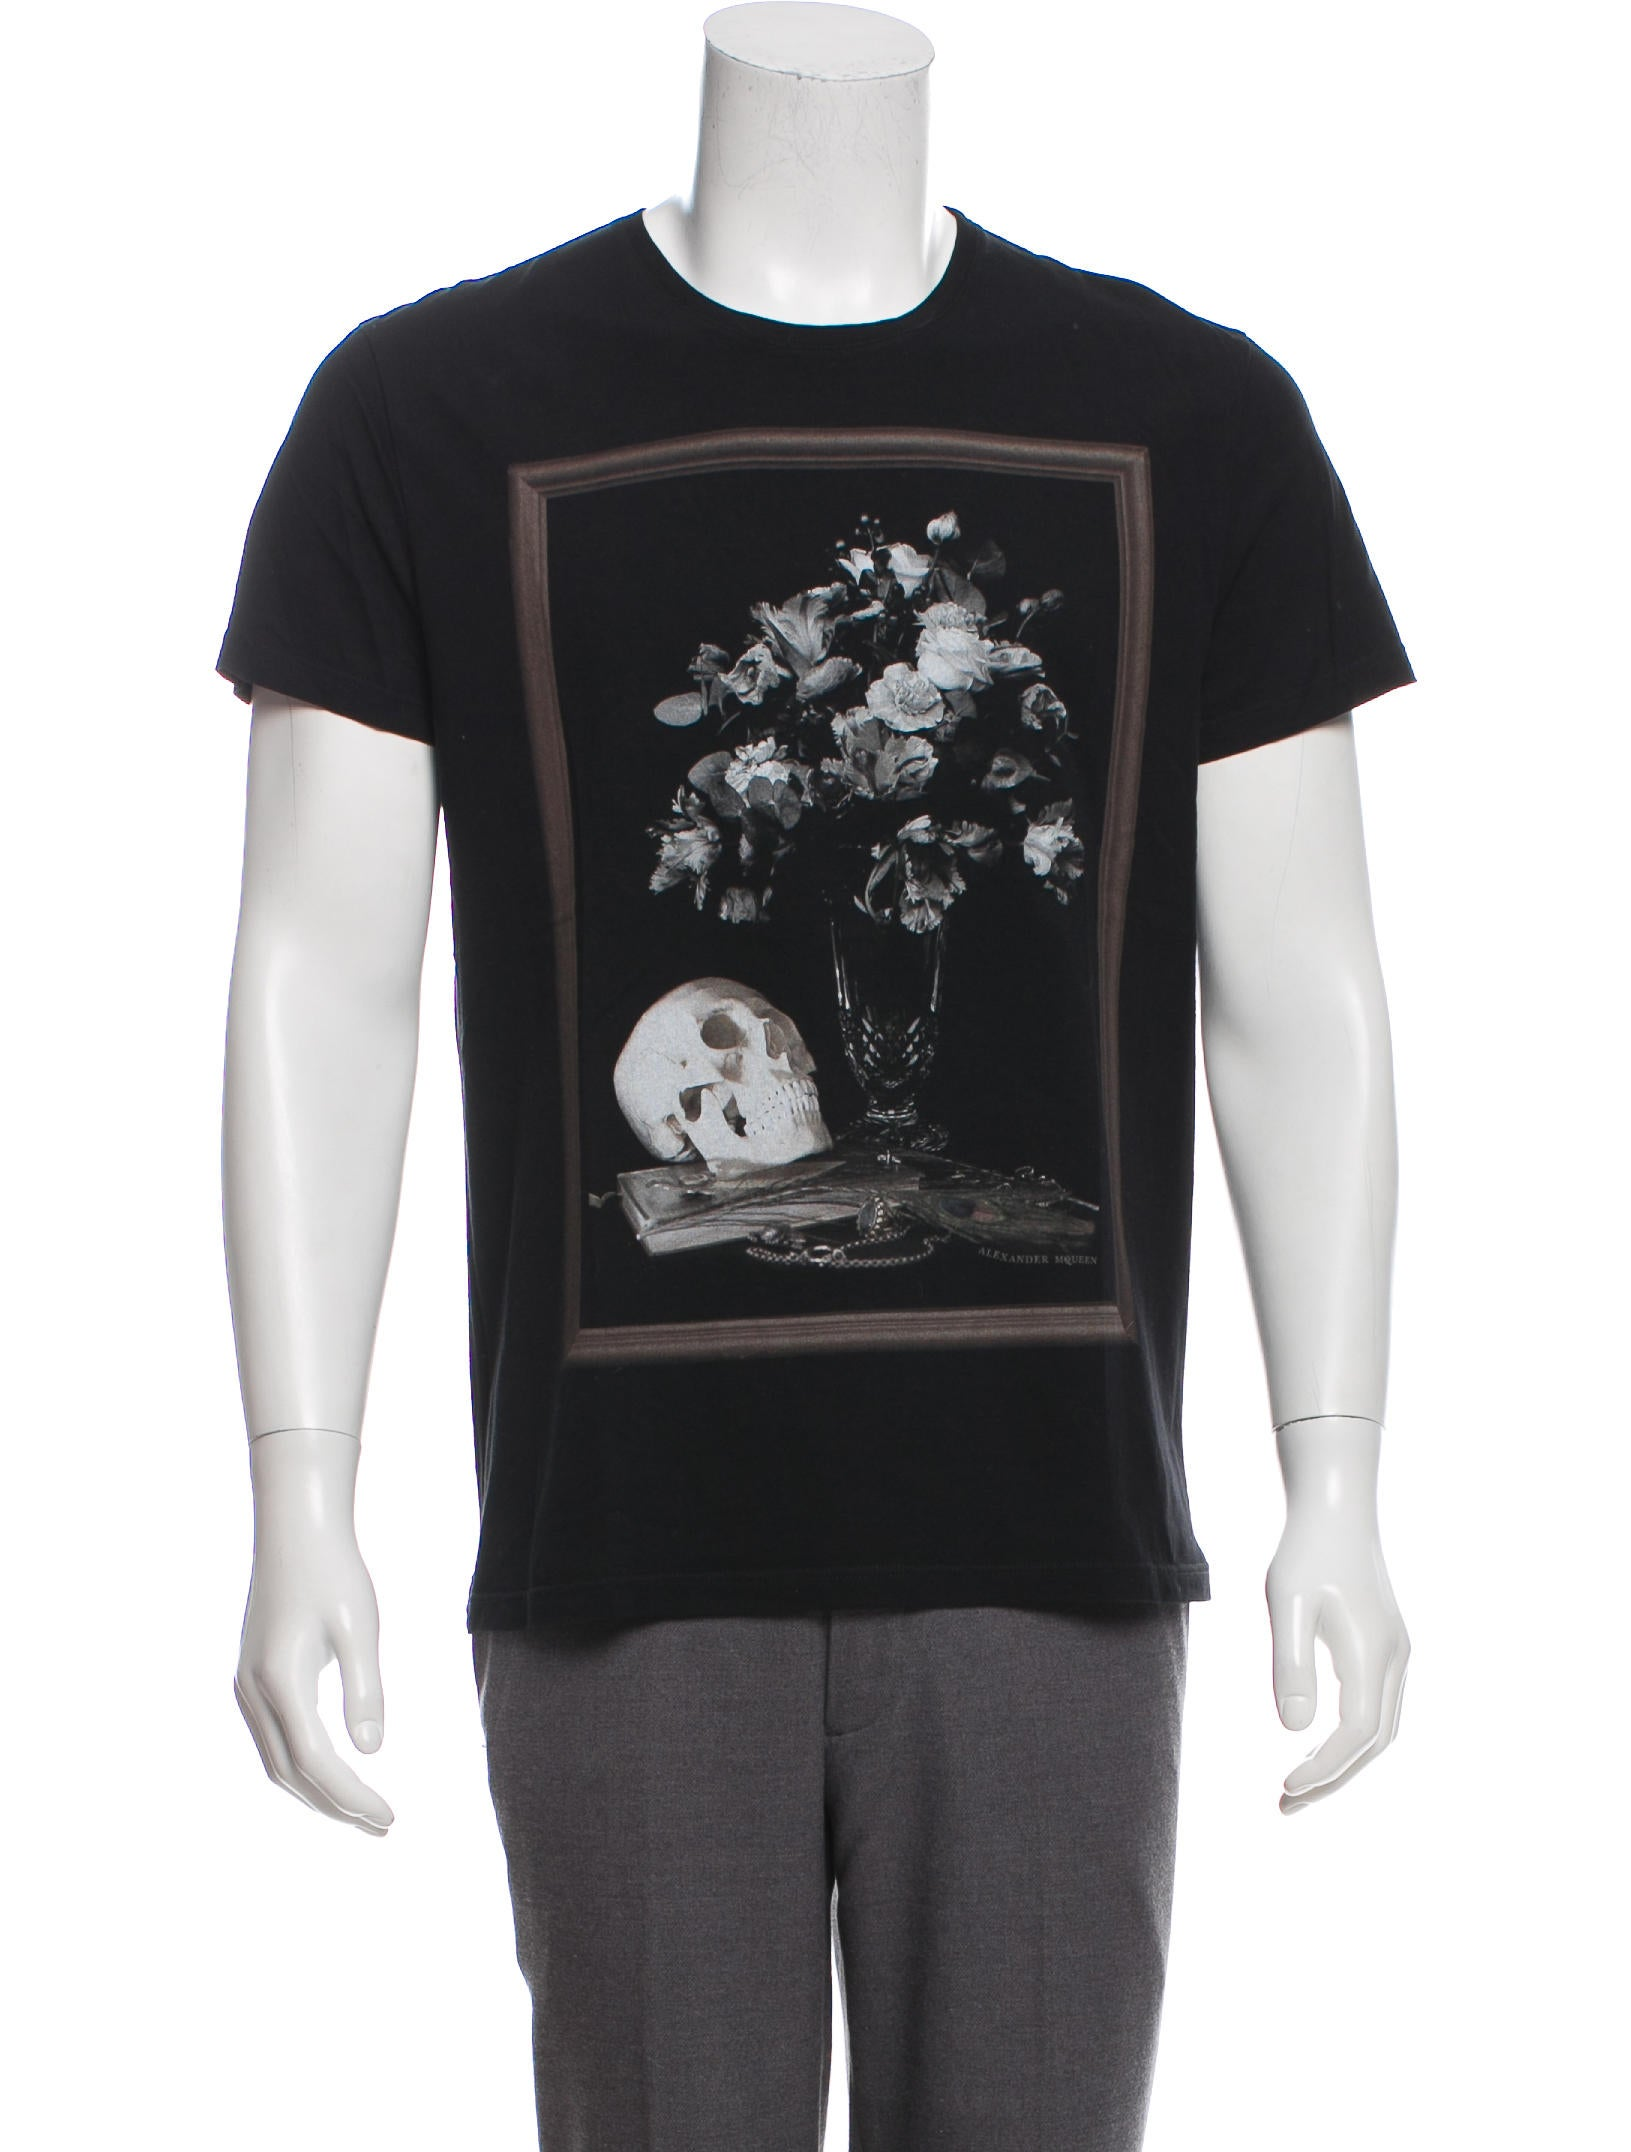 b27900d0b Dior Homme Bee-Accented Short Sleeve T-Shirt - Clothing - HMM26983 ...